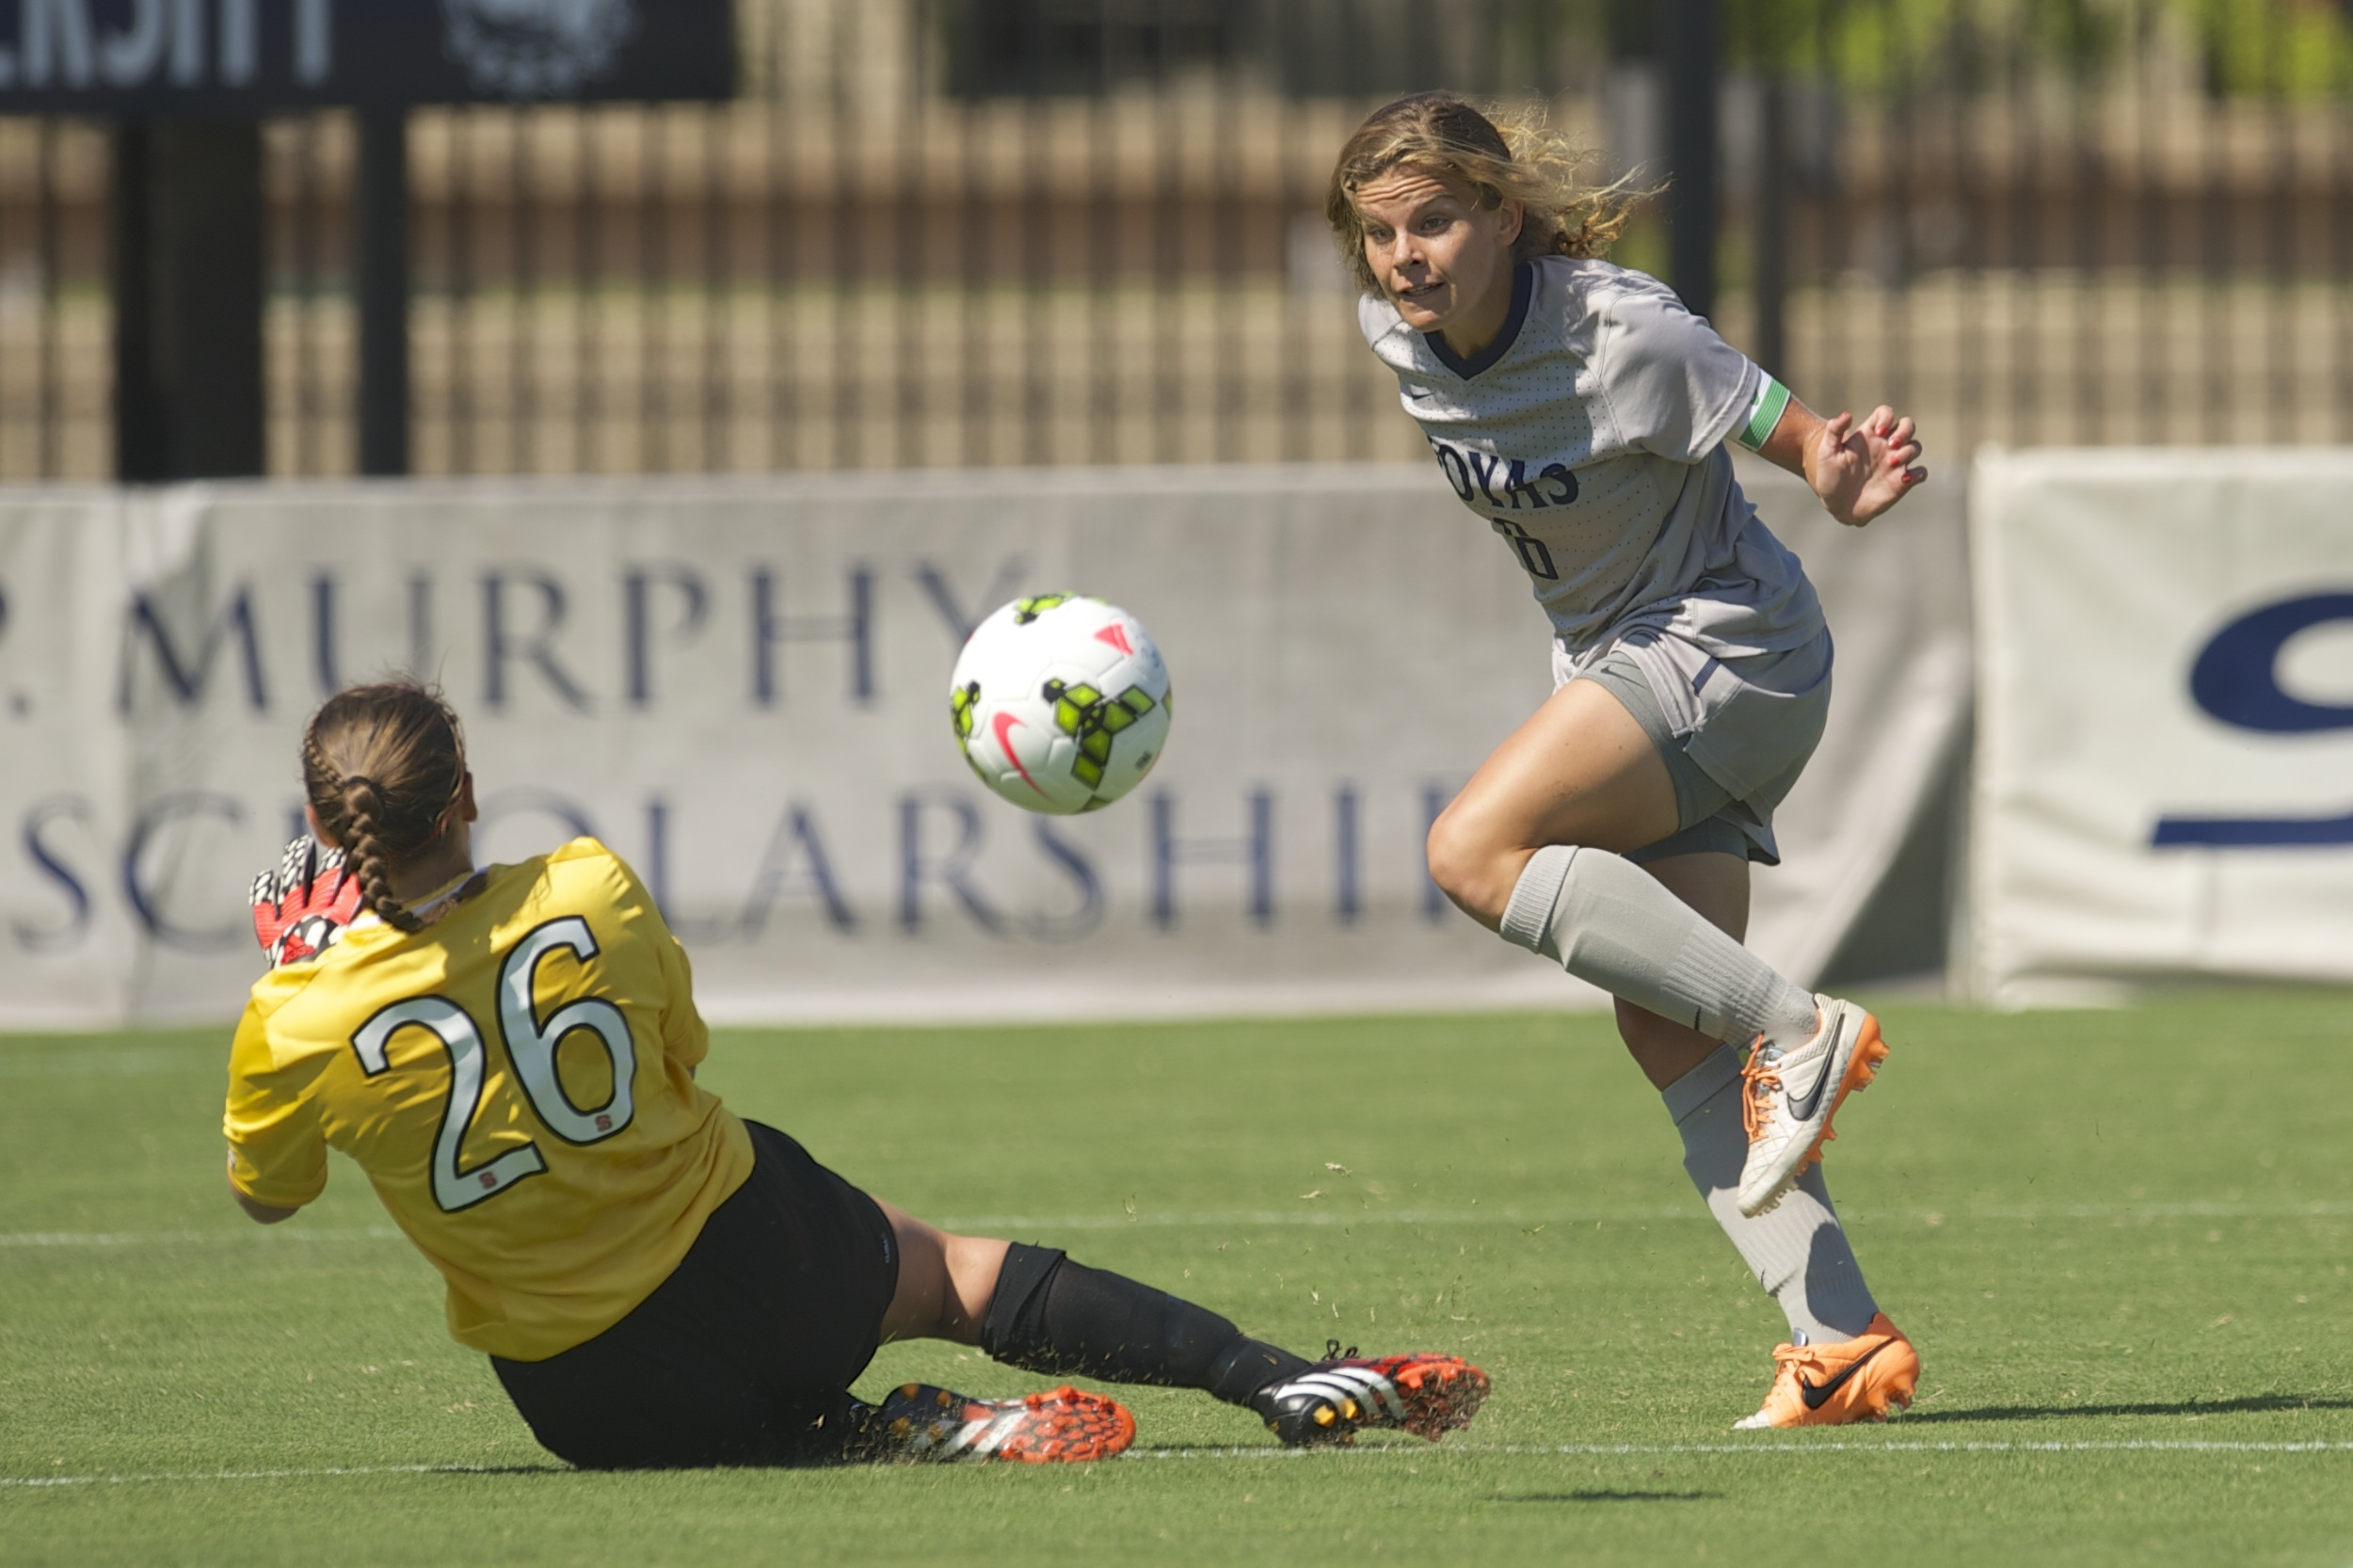 Former Georgetown University women's soccer standout Daphne Corboz (Green Brook, N.J./Watchung Hills) was among a group of players who are competing for the United States Under-23 Women's National Team during a four-team tournament in Norway.